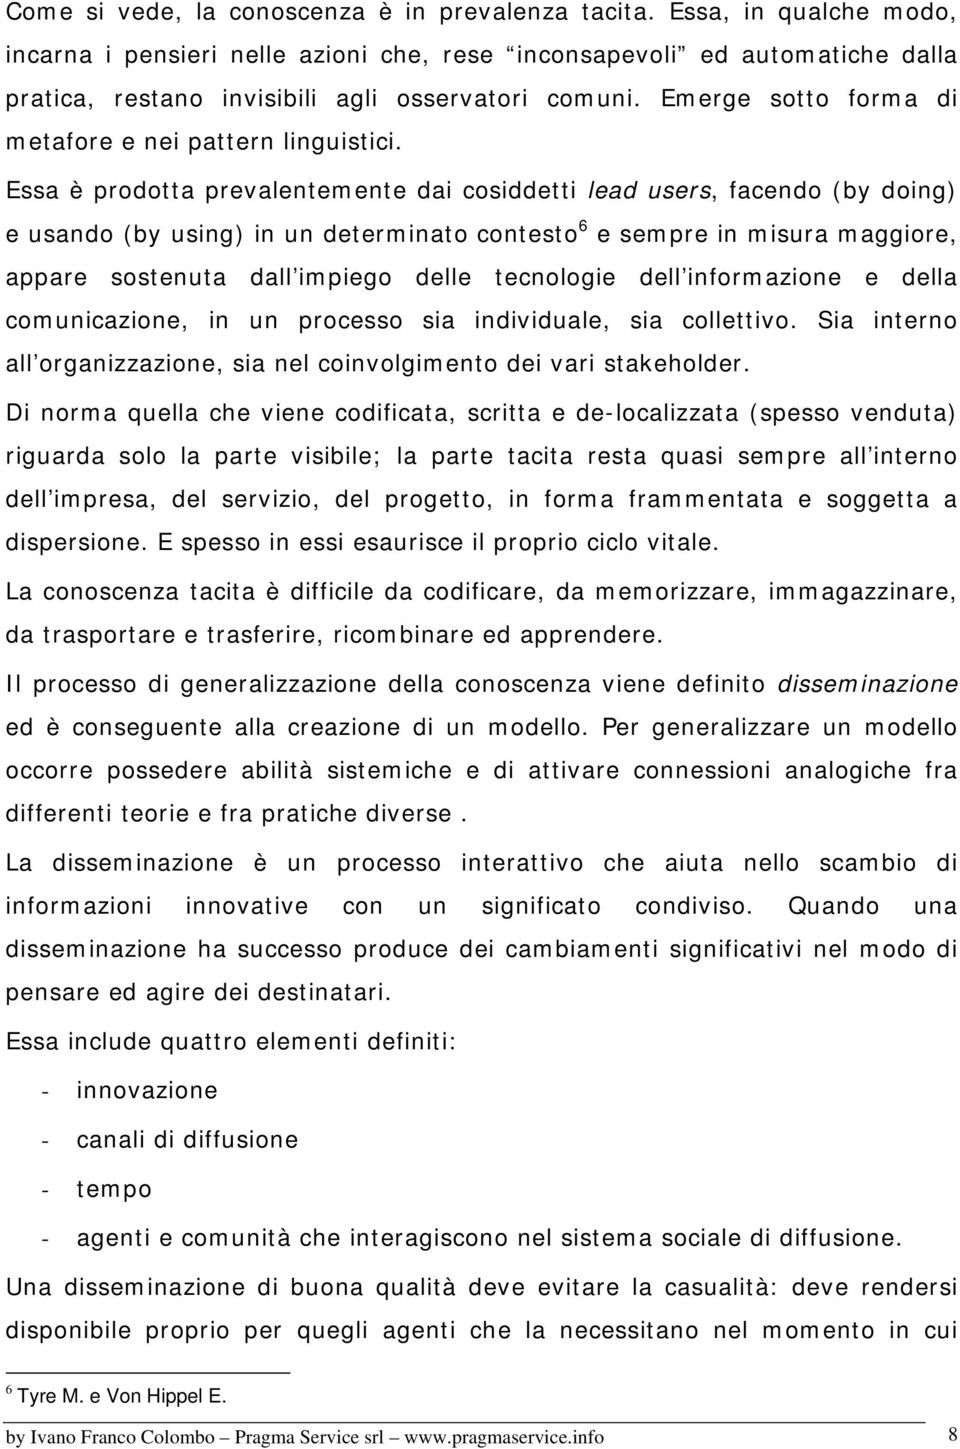 Emerge sotto forma di metafore e nei pattern linguistici.